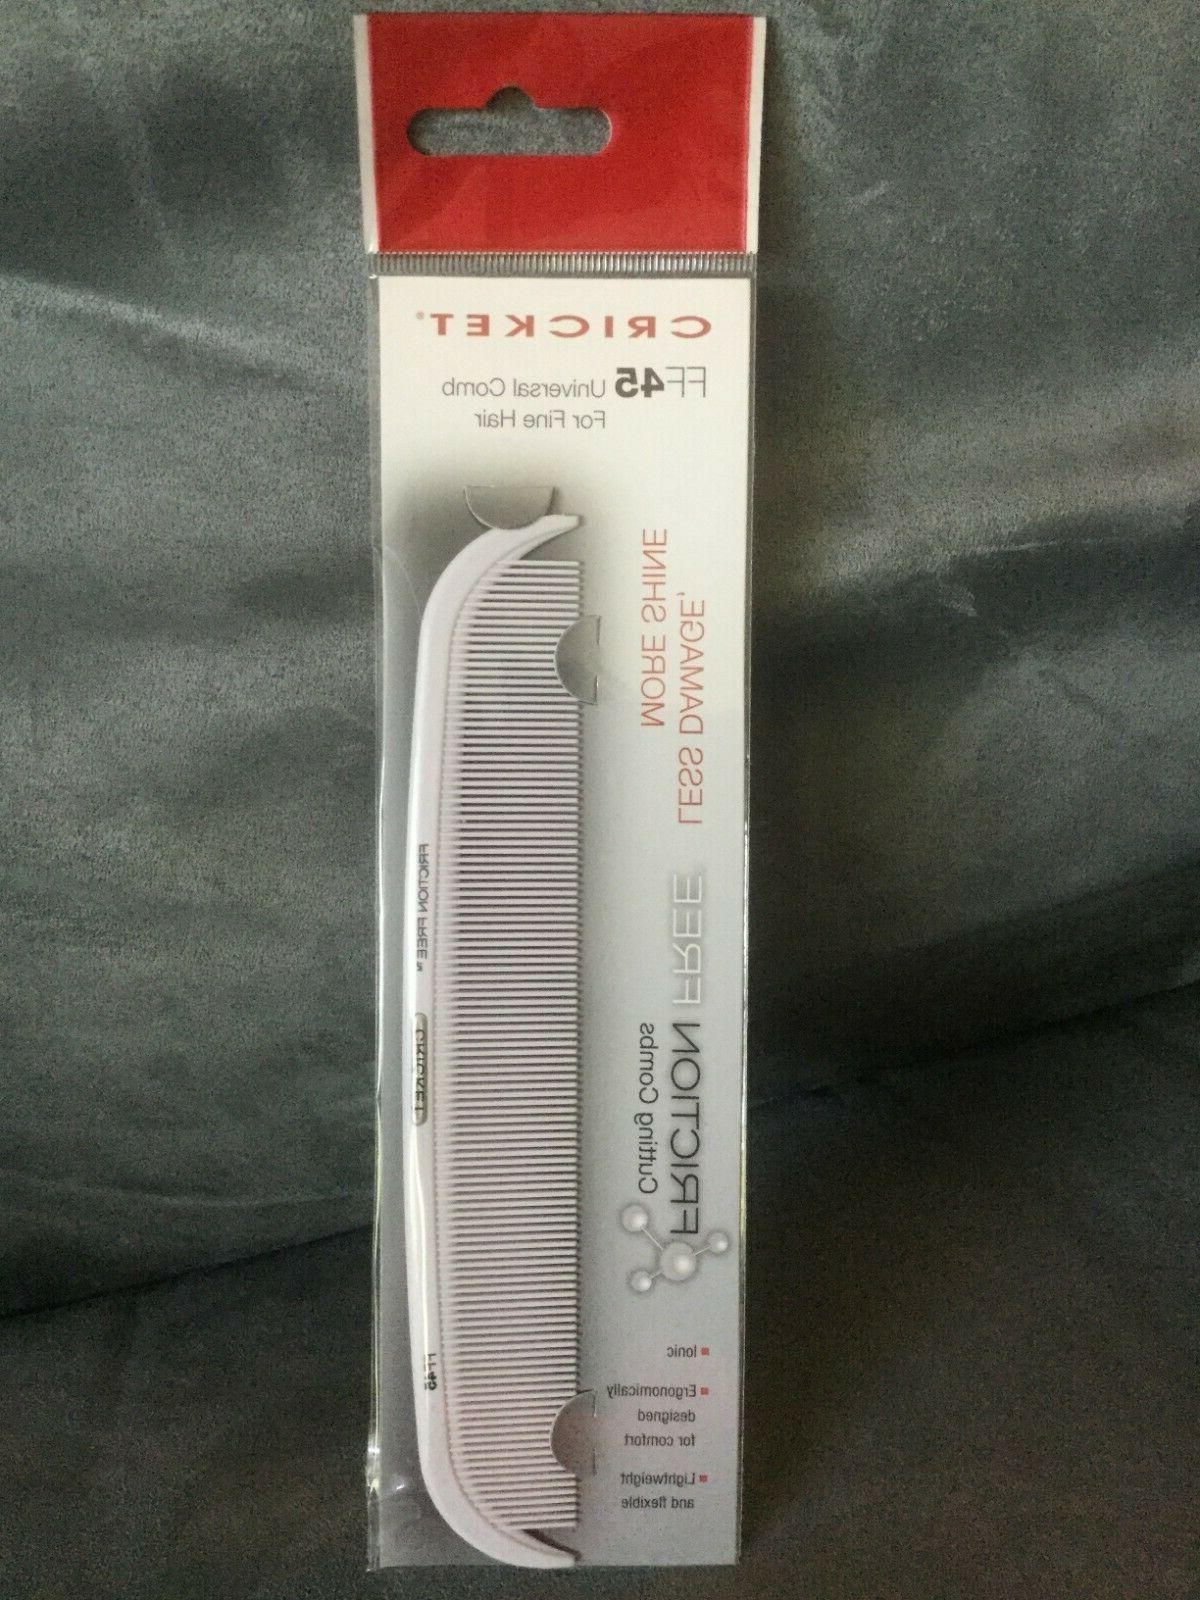 Cricket FF 45 Universal Comb for Fine Hair